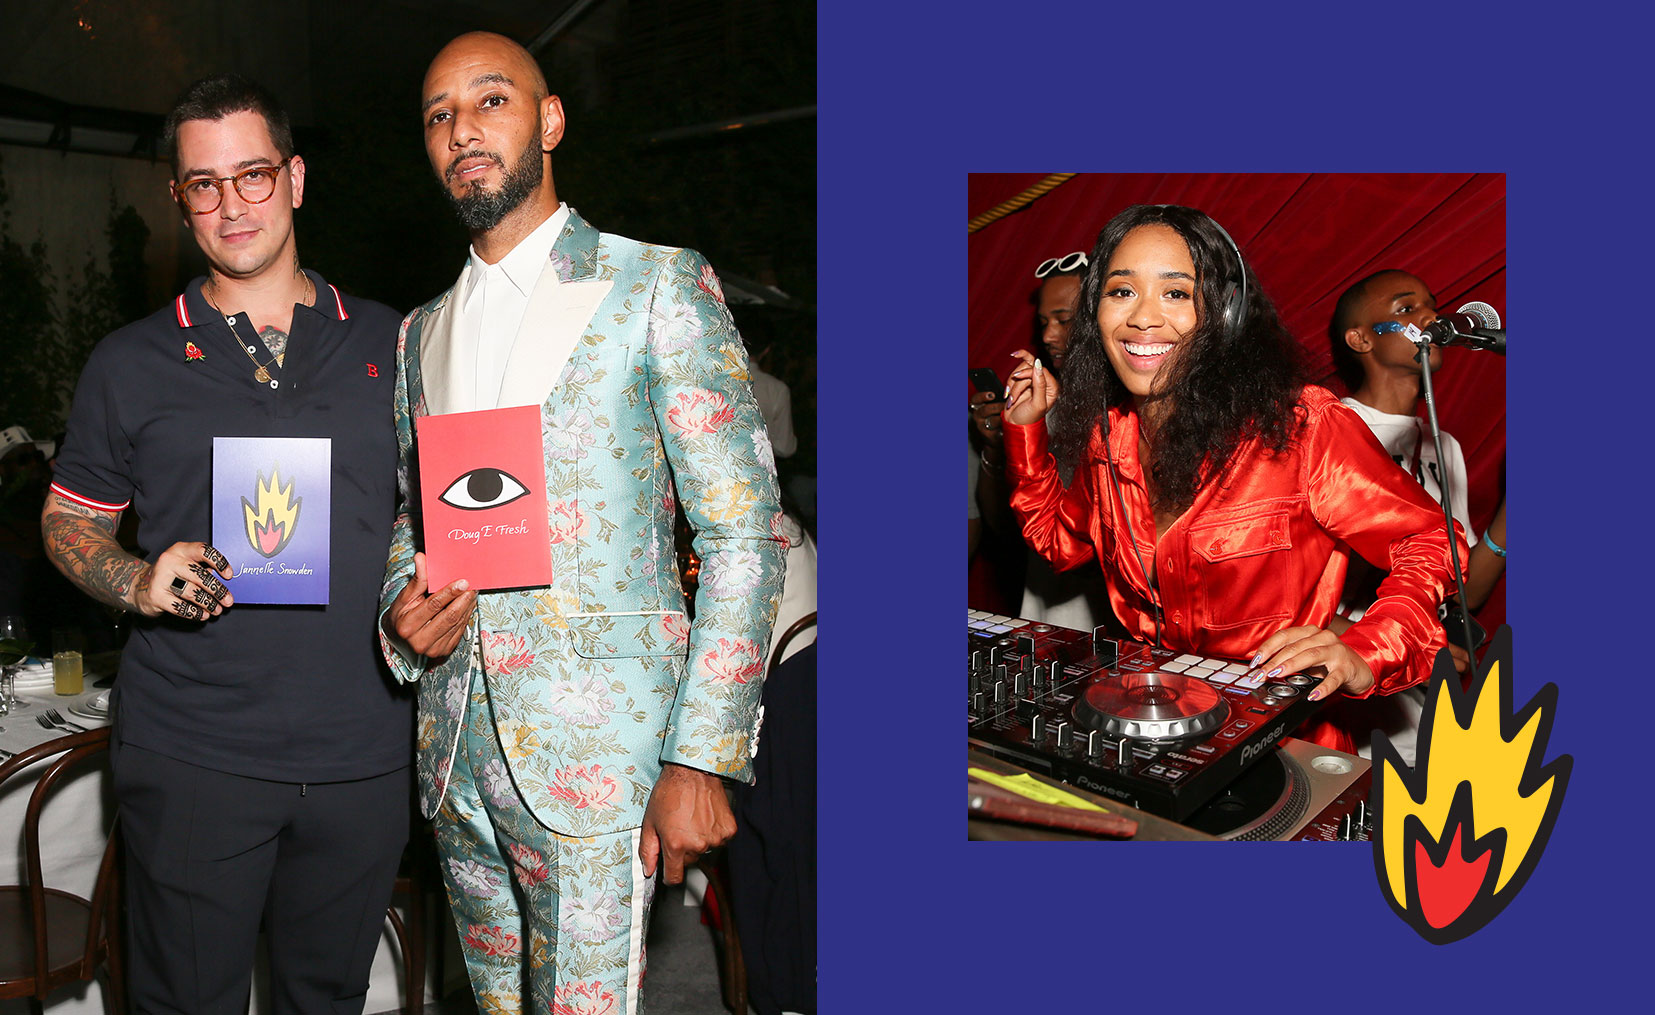 CELEBRATING THE BALLY COLLECTIVE CURATED BY SWIZZ BEATZ